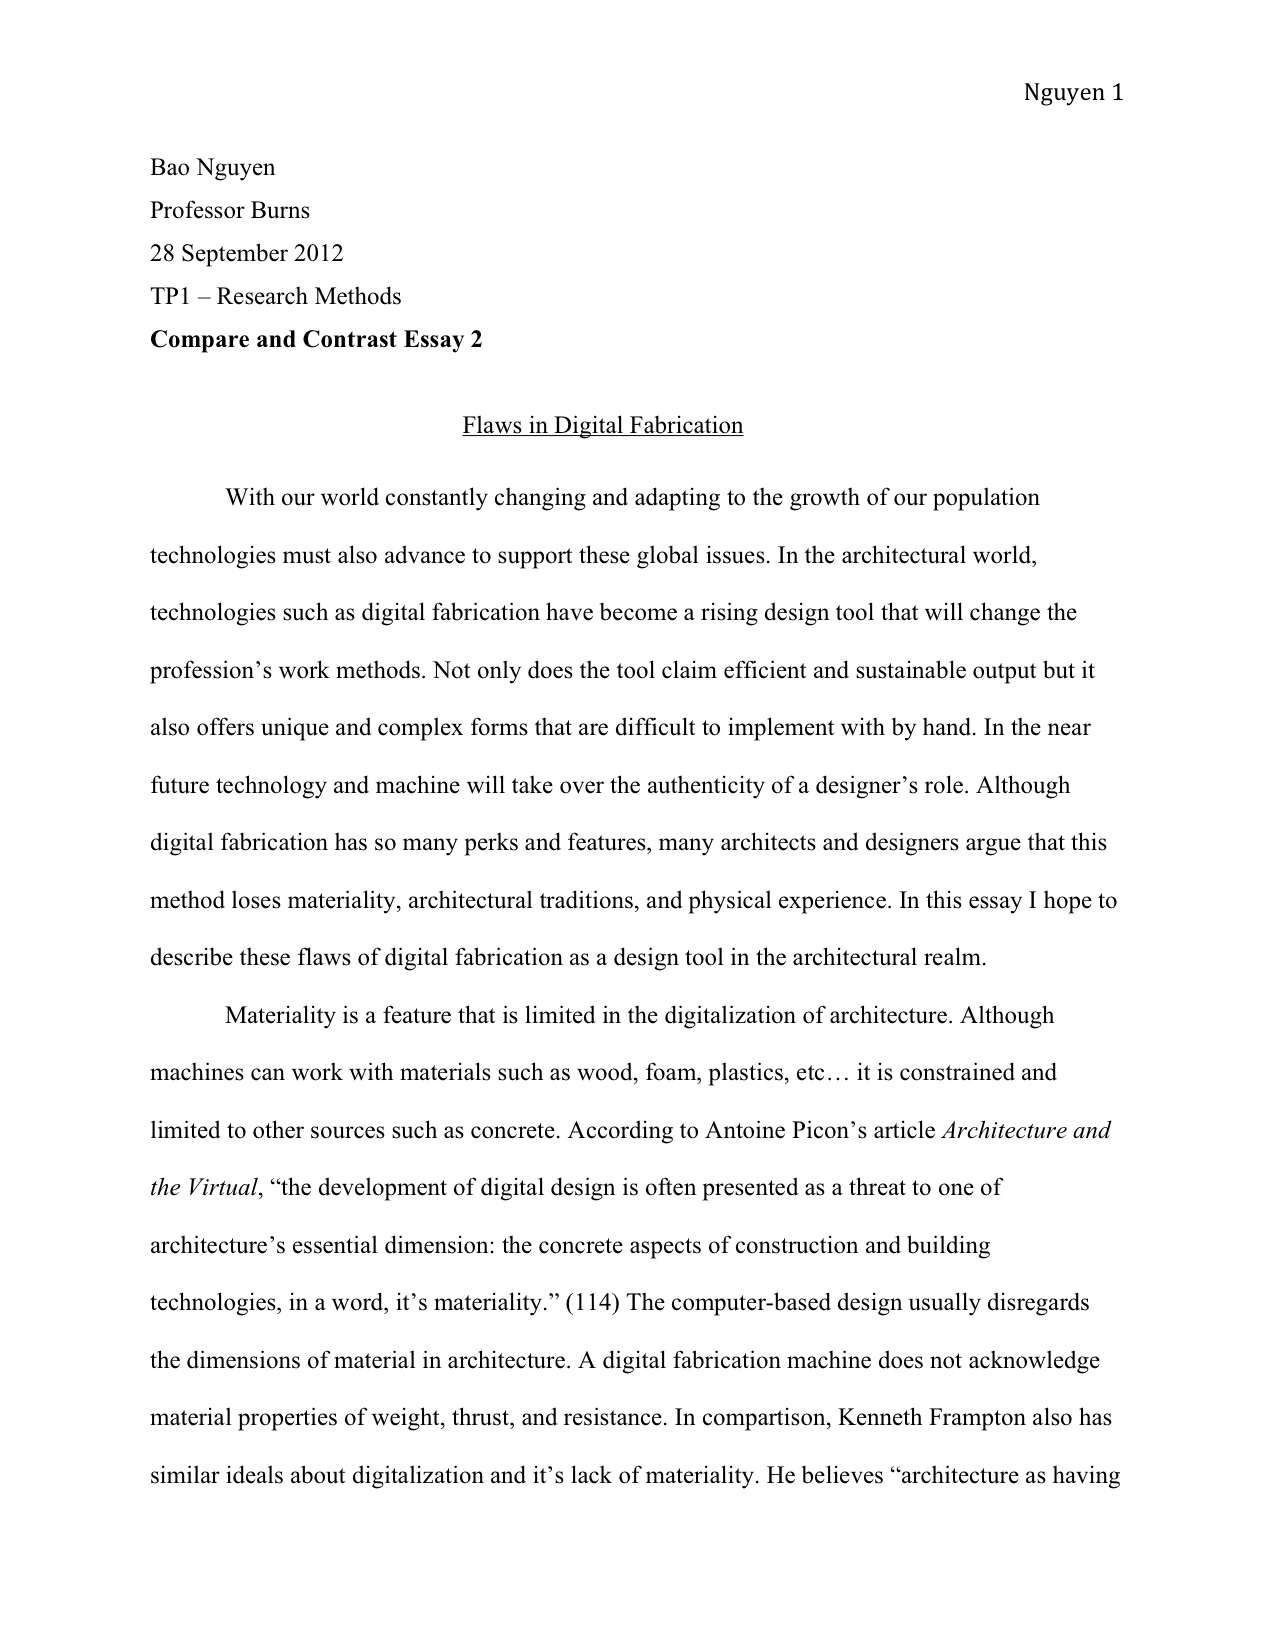 Best college application essays 6th